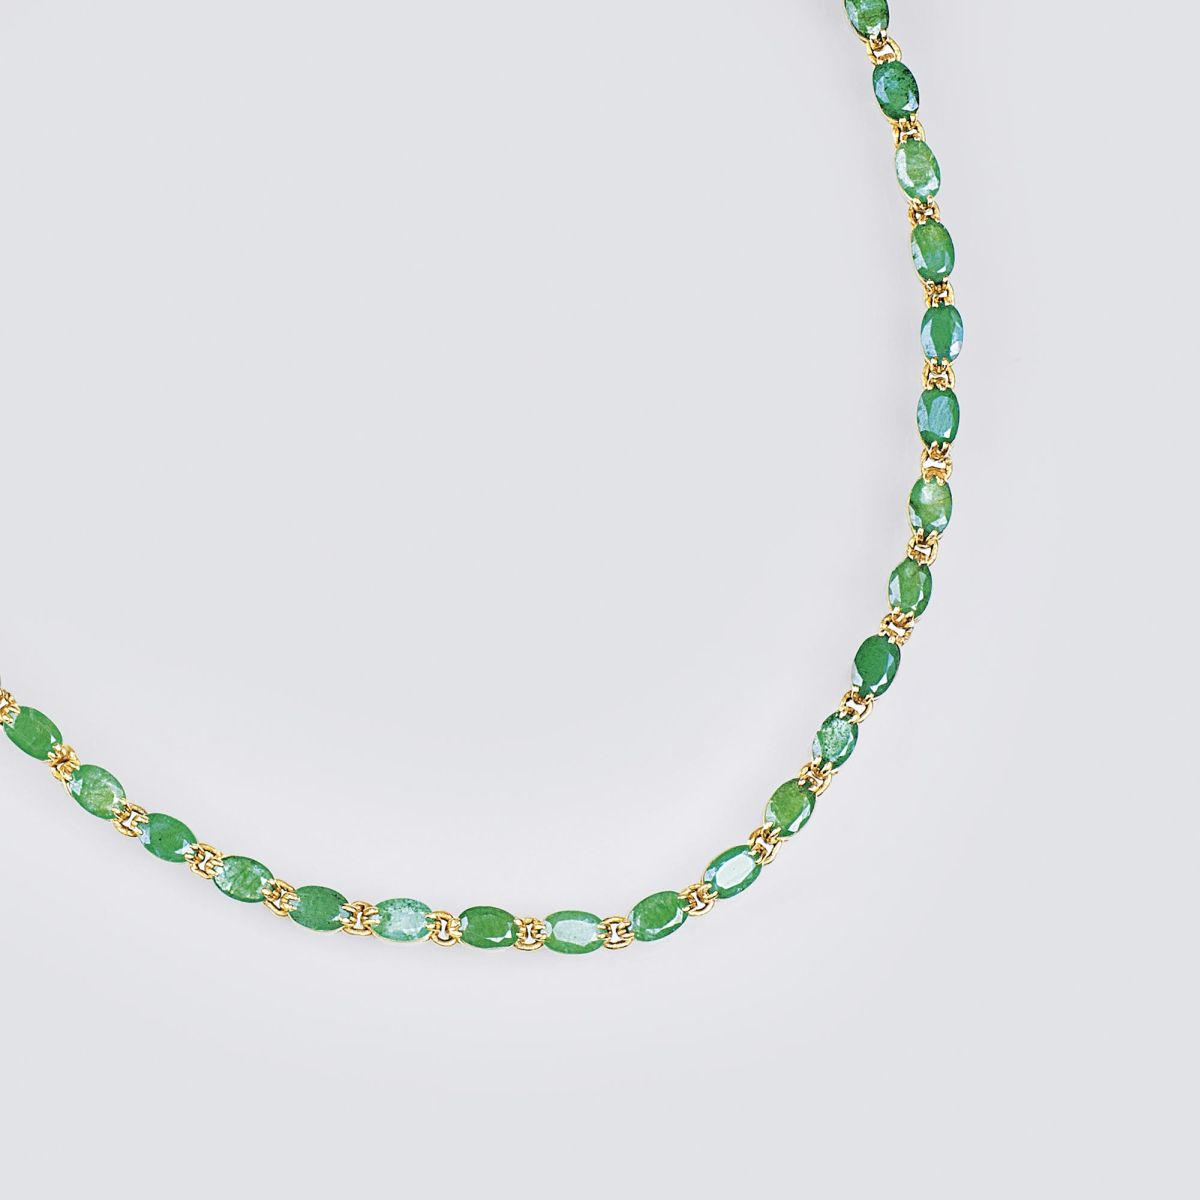 A Gold Necklace with Emeralds